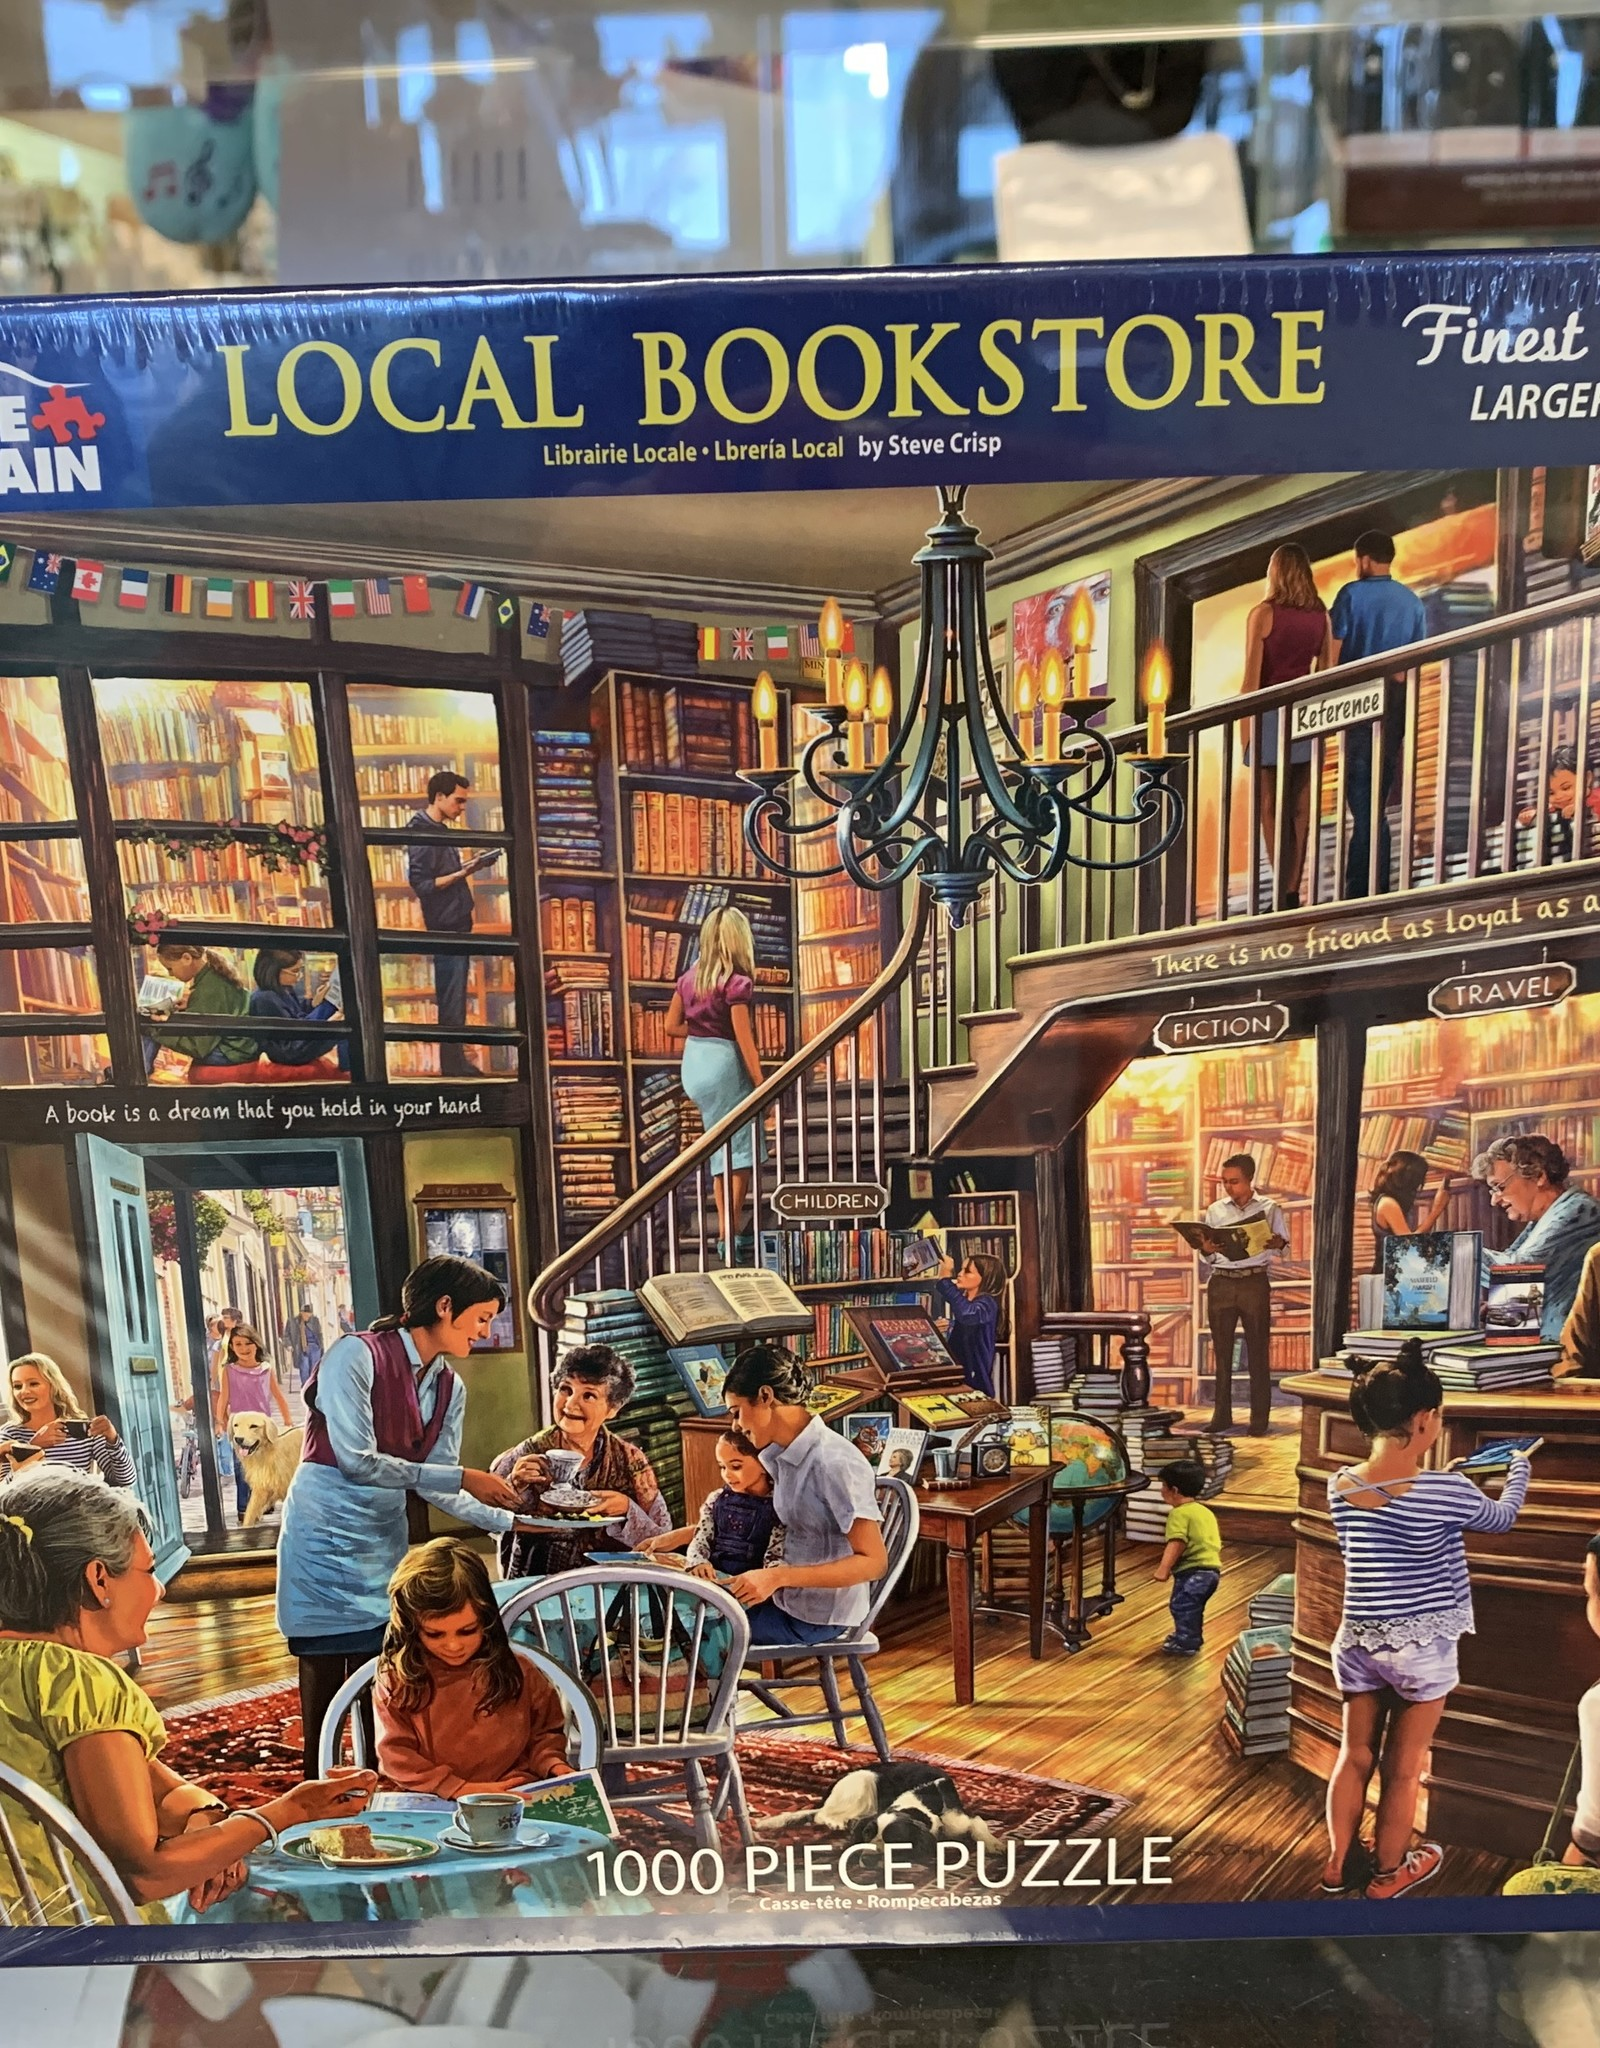 WHITE MOUNTAIN PUZZLES, INC. 1000 pc Local Book Store Puzzle